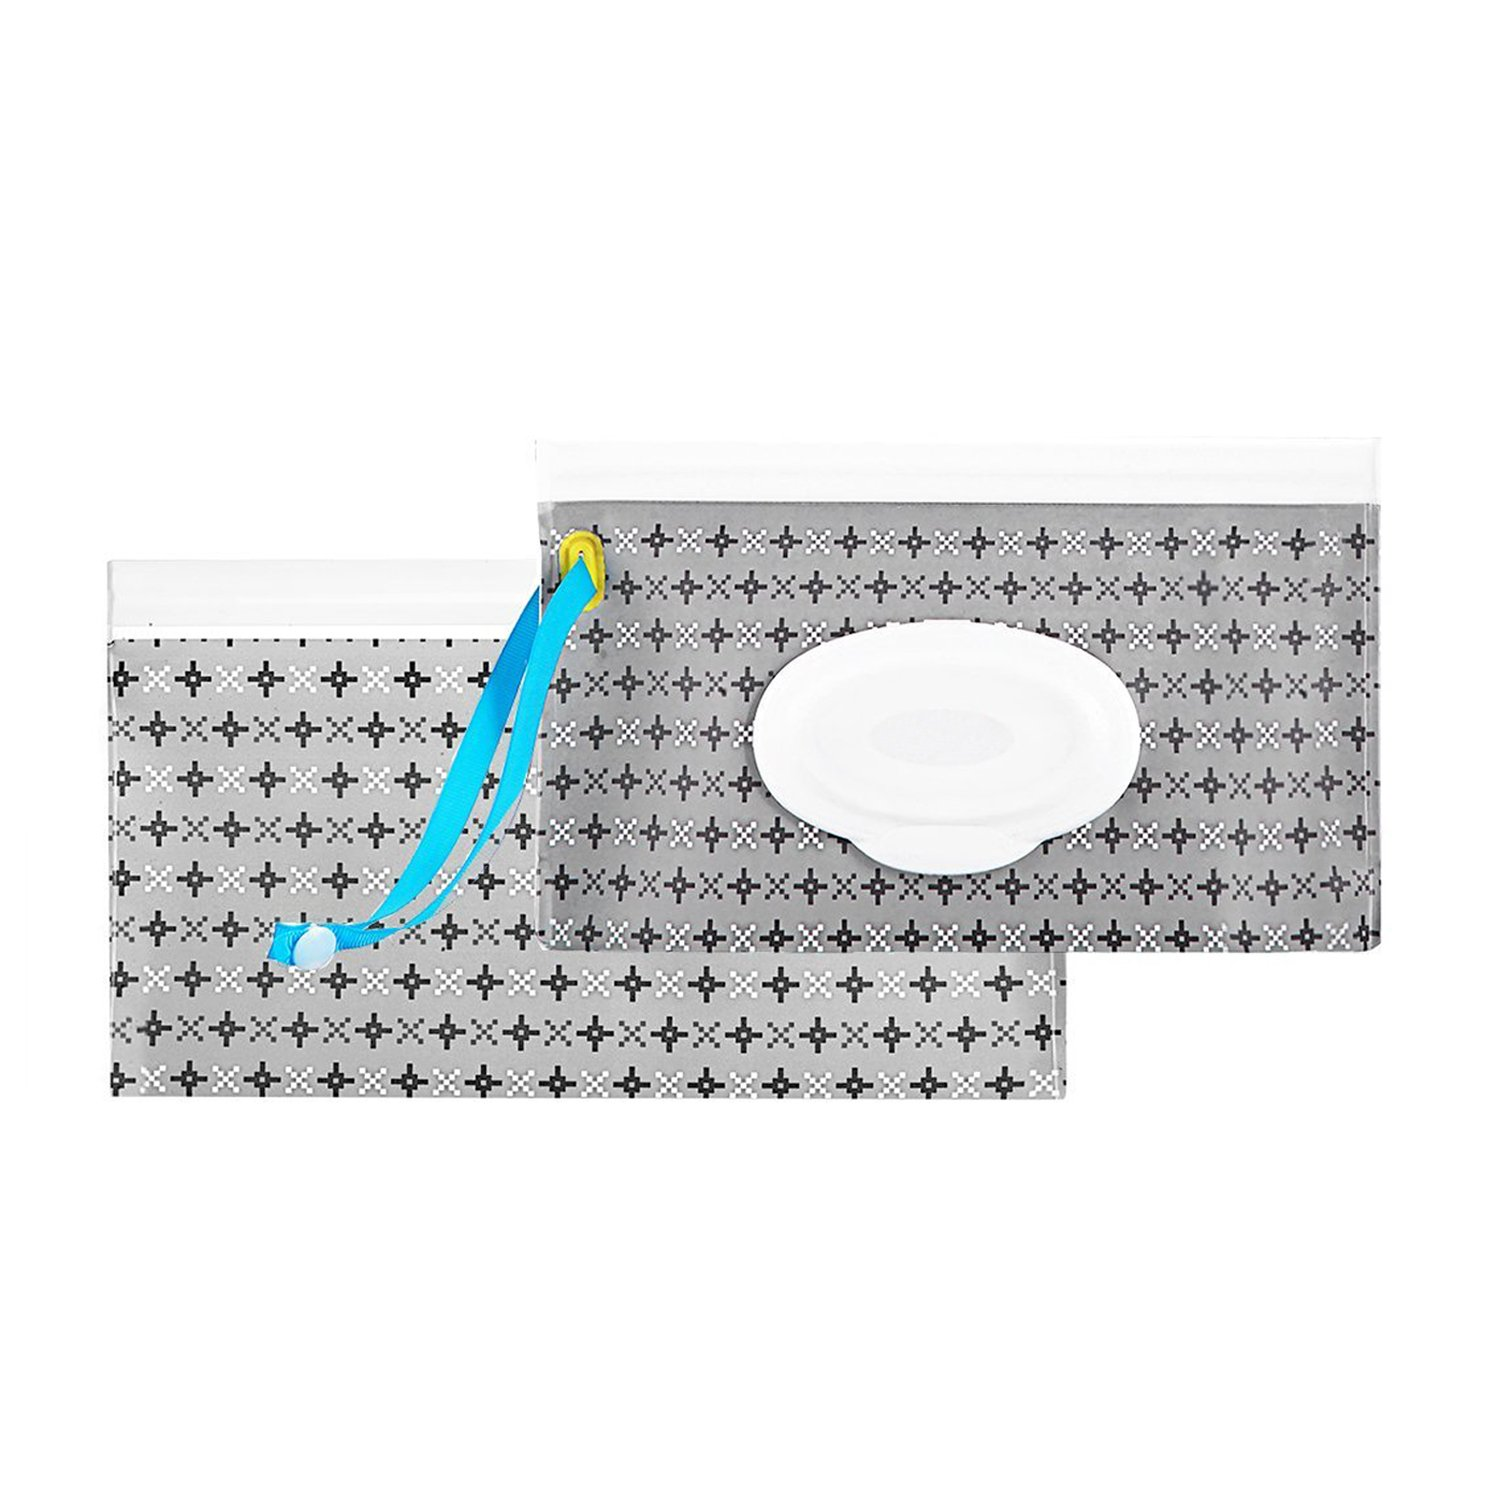 Reusable Wet Wipe Pouch Dispenser for Baby or Personal Wipes, Eco Friendly Wipe Pouches, Great for Travel (2 pack) (AA)